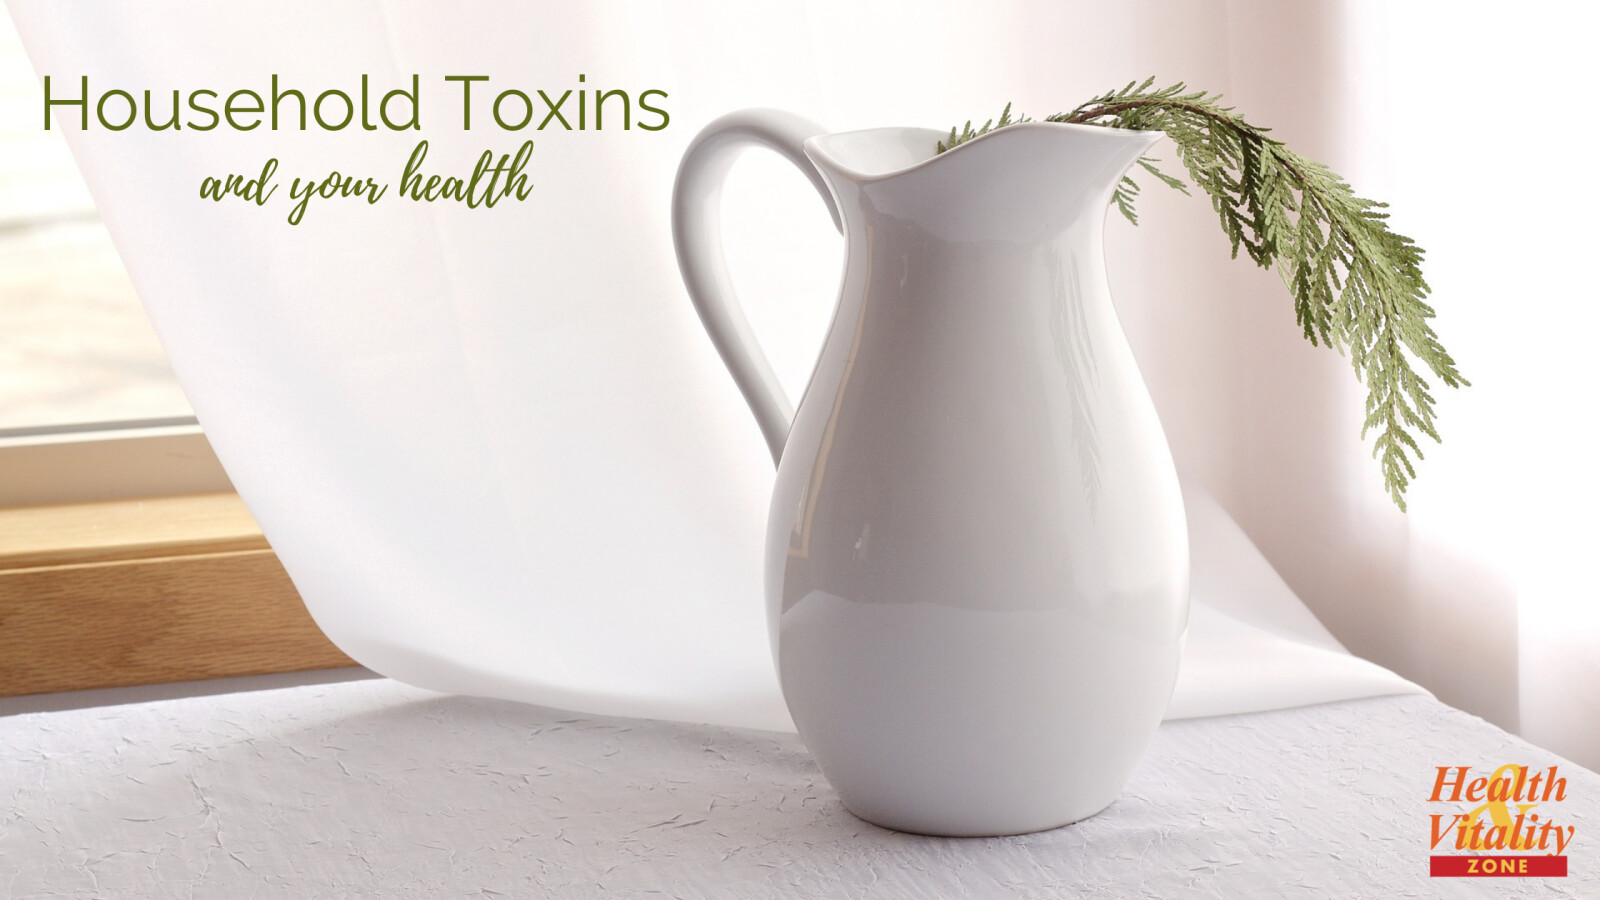 Household Toxins and Your Health